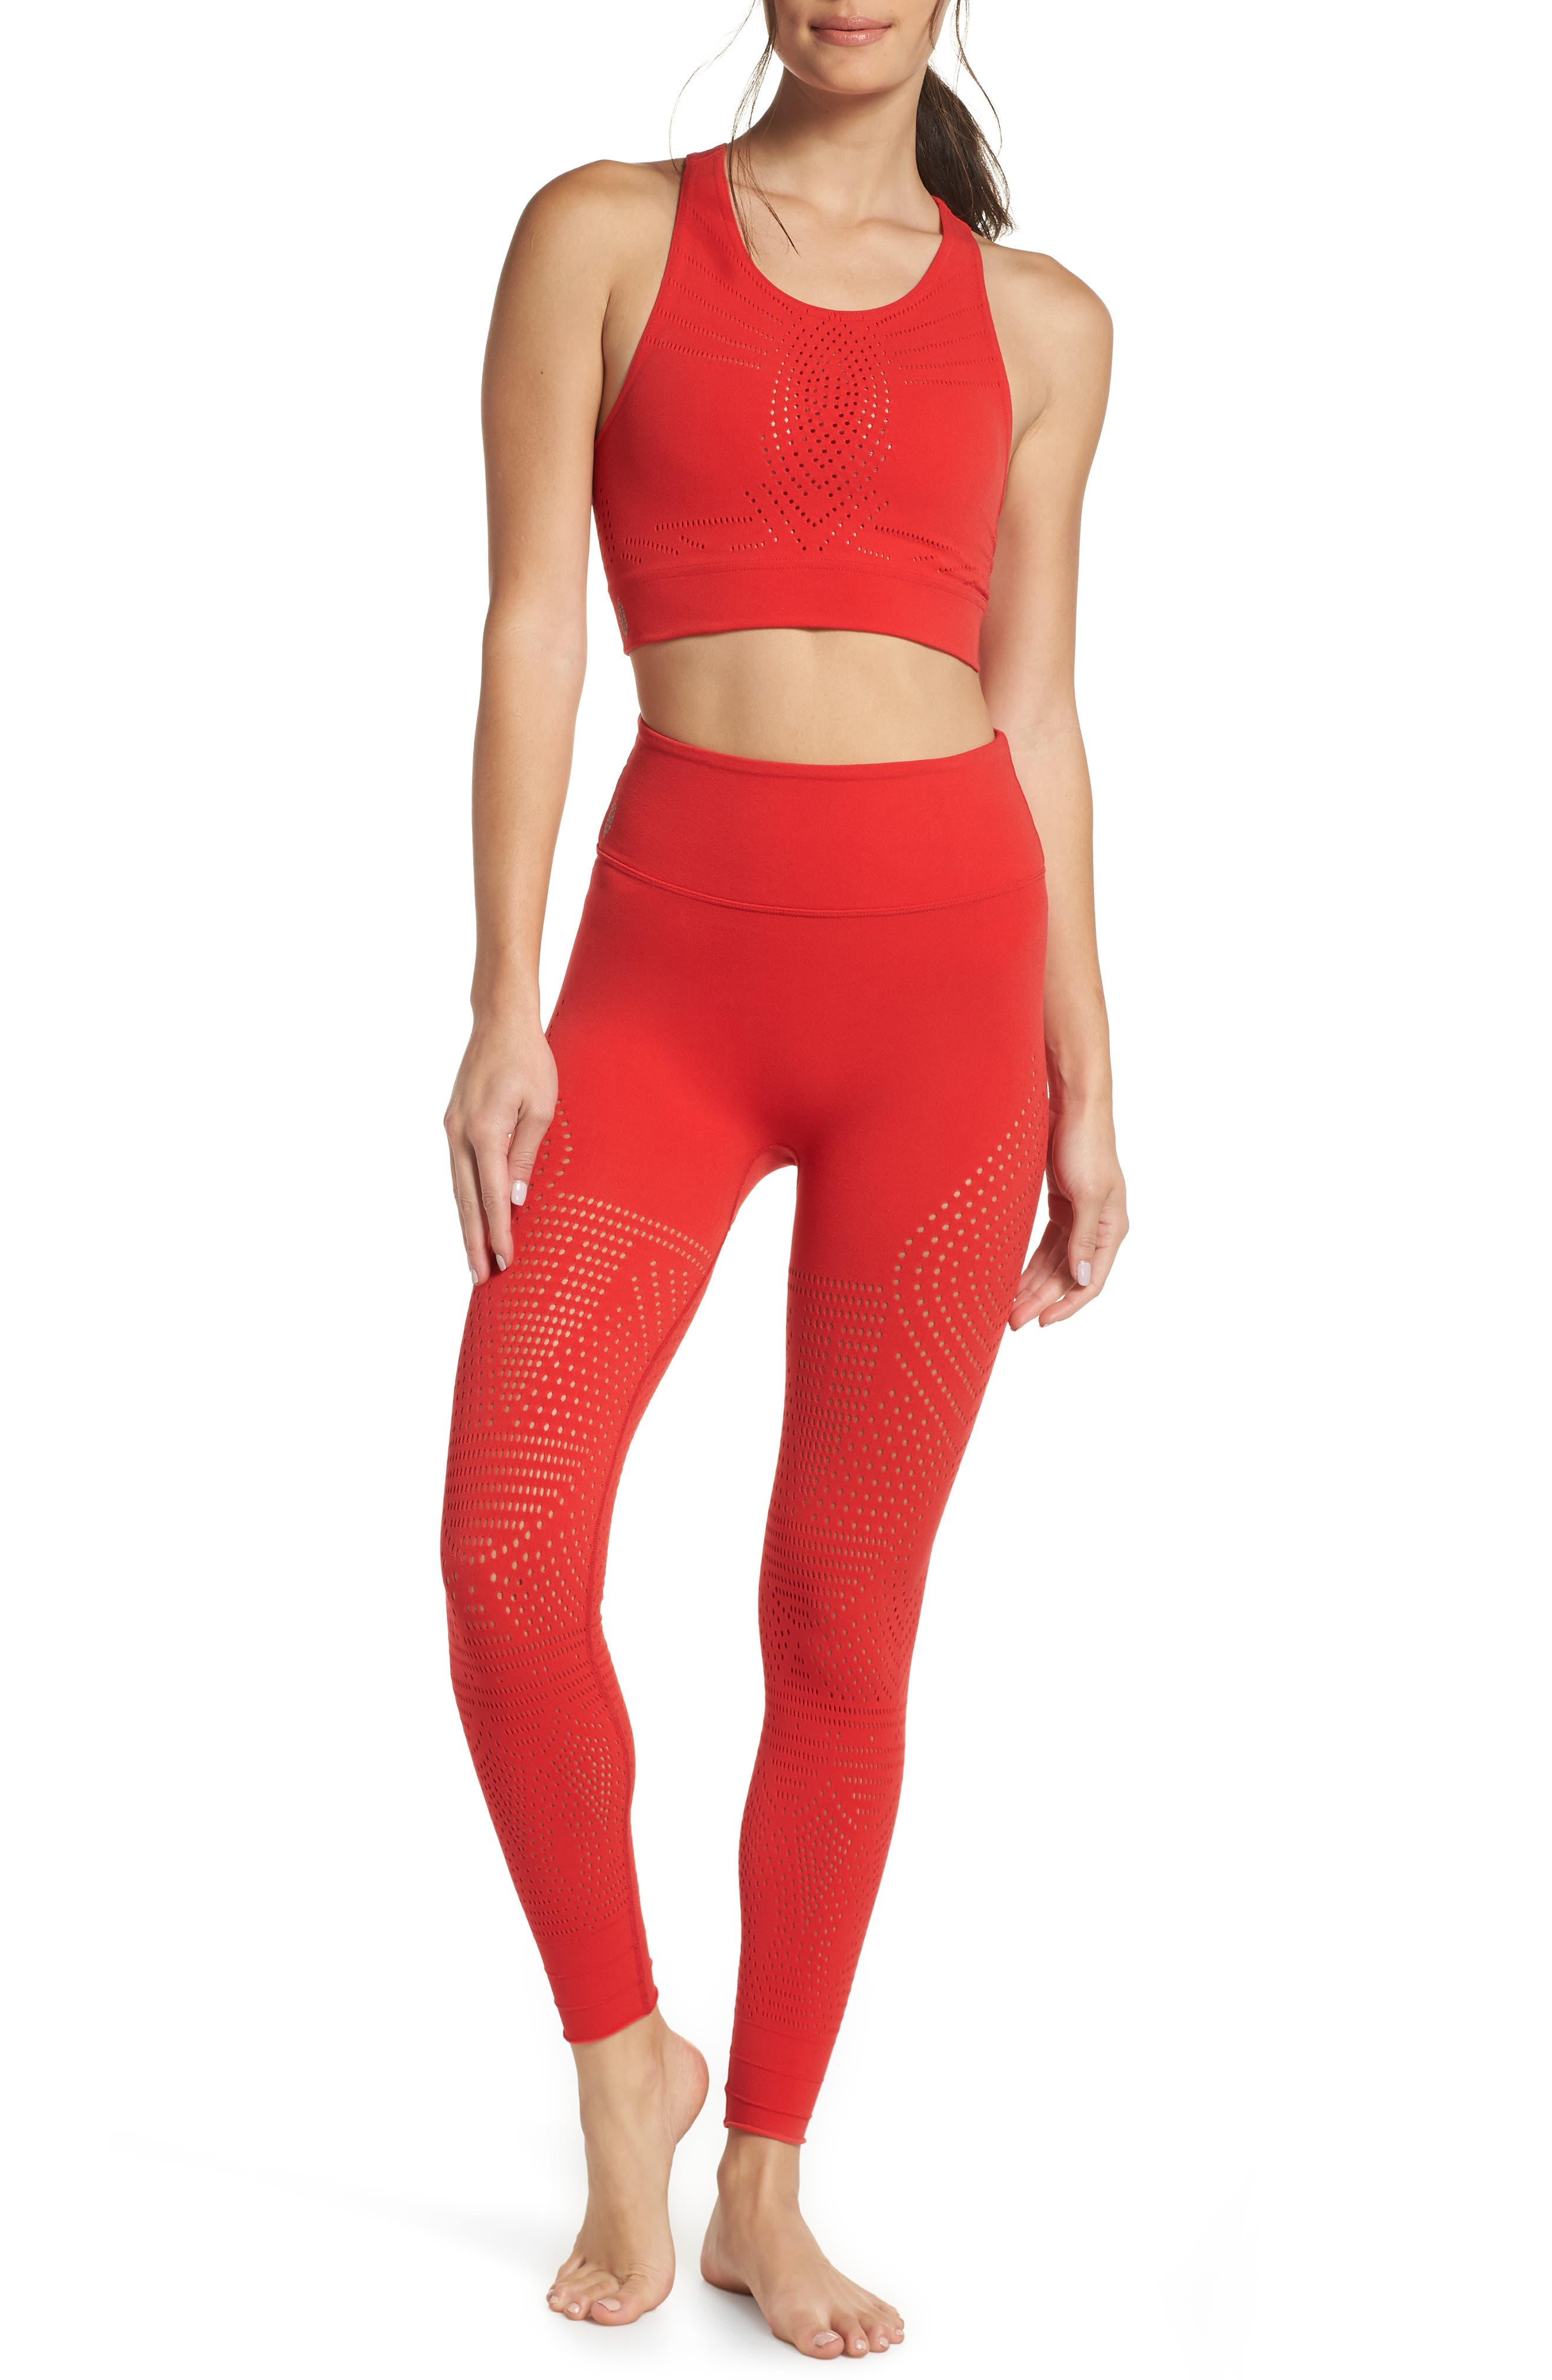 FP Movement Ecology Sports Bra,                             Alternate thumbnail 8, color,                             RED